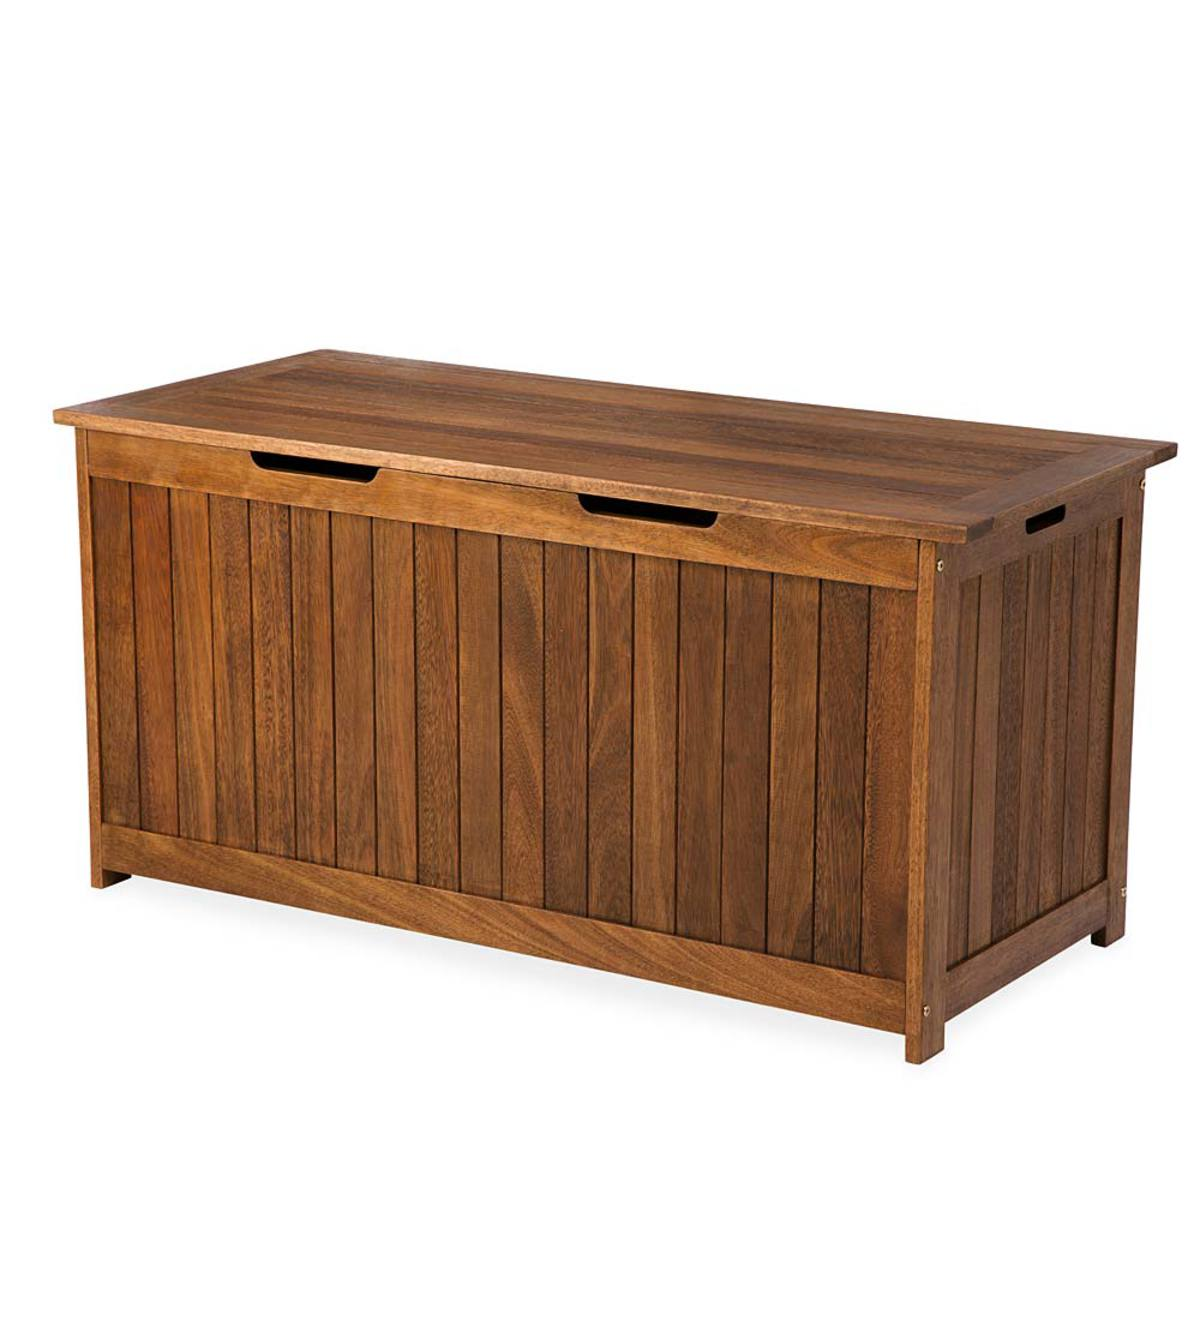 Eucalyptus Wood Storage Box, Lancaster Outdoor Furniture Collection